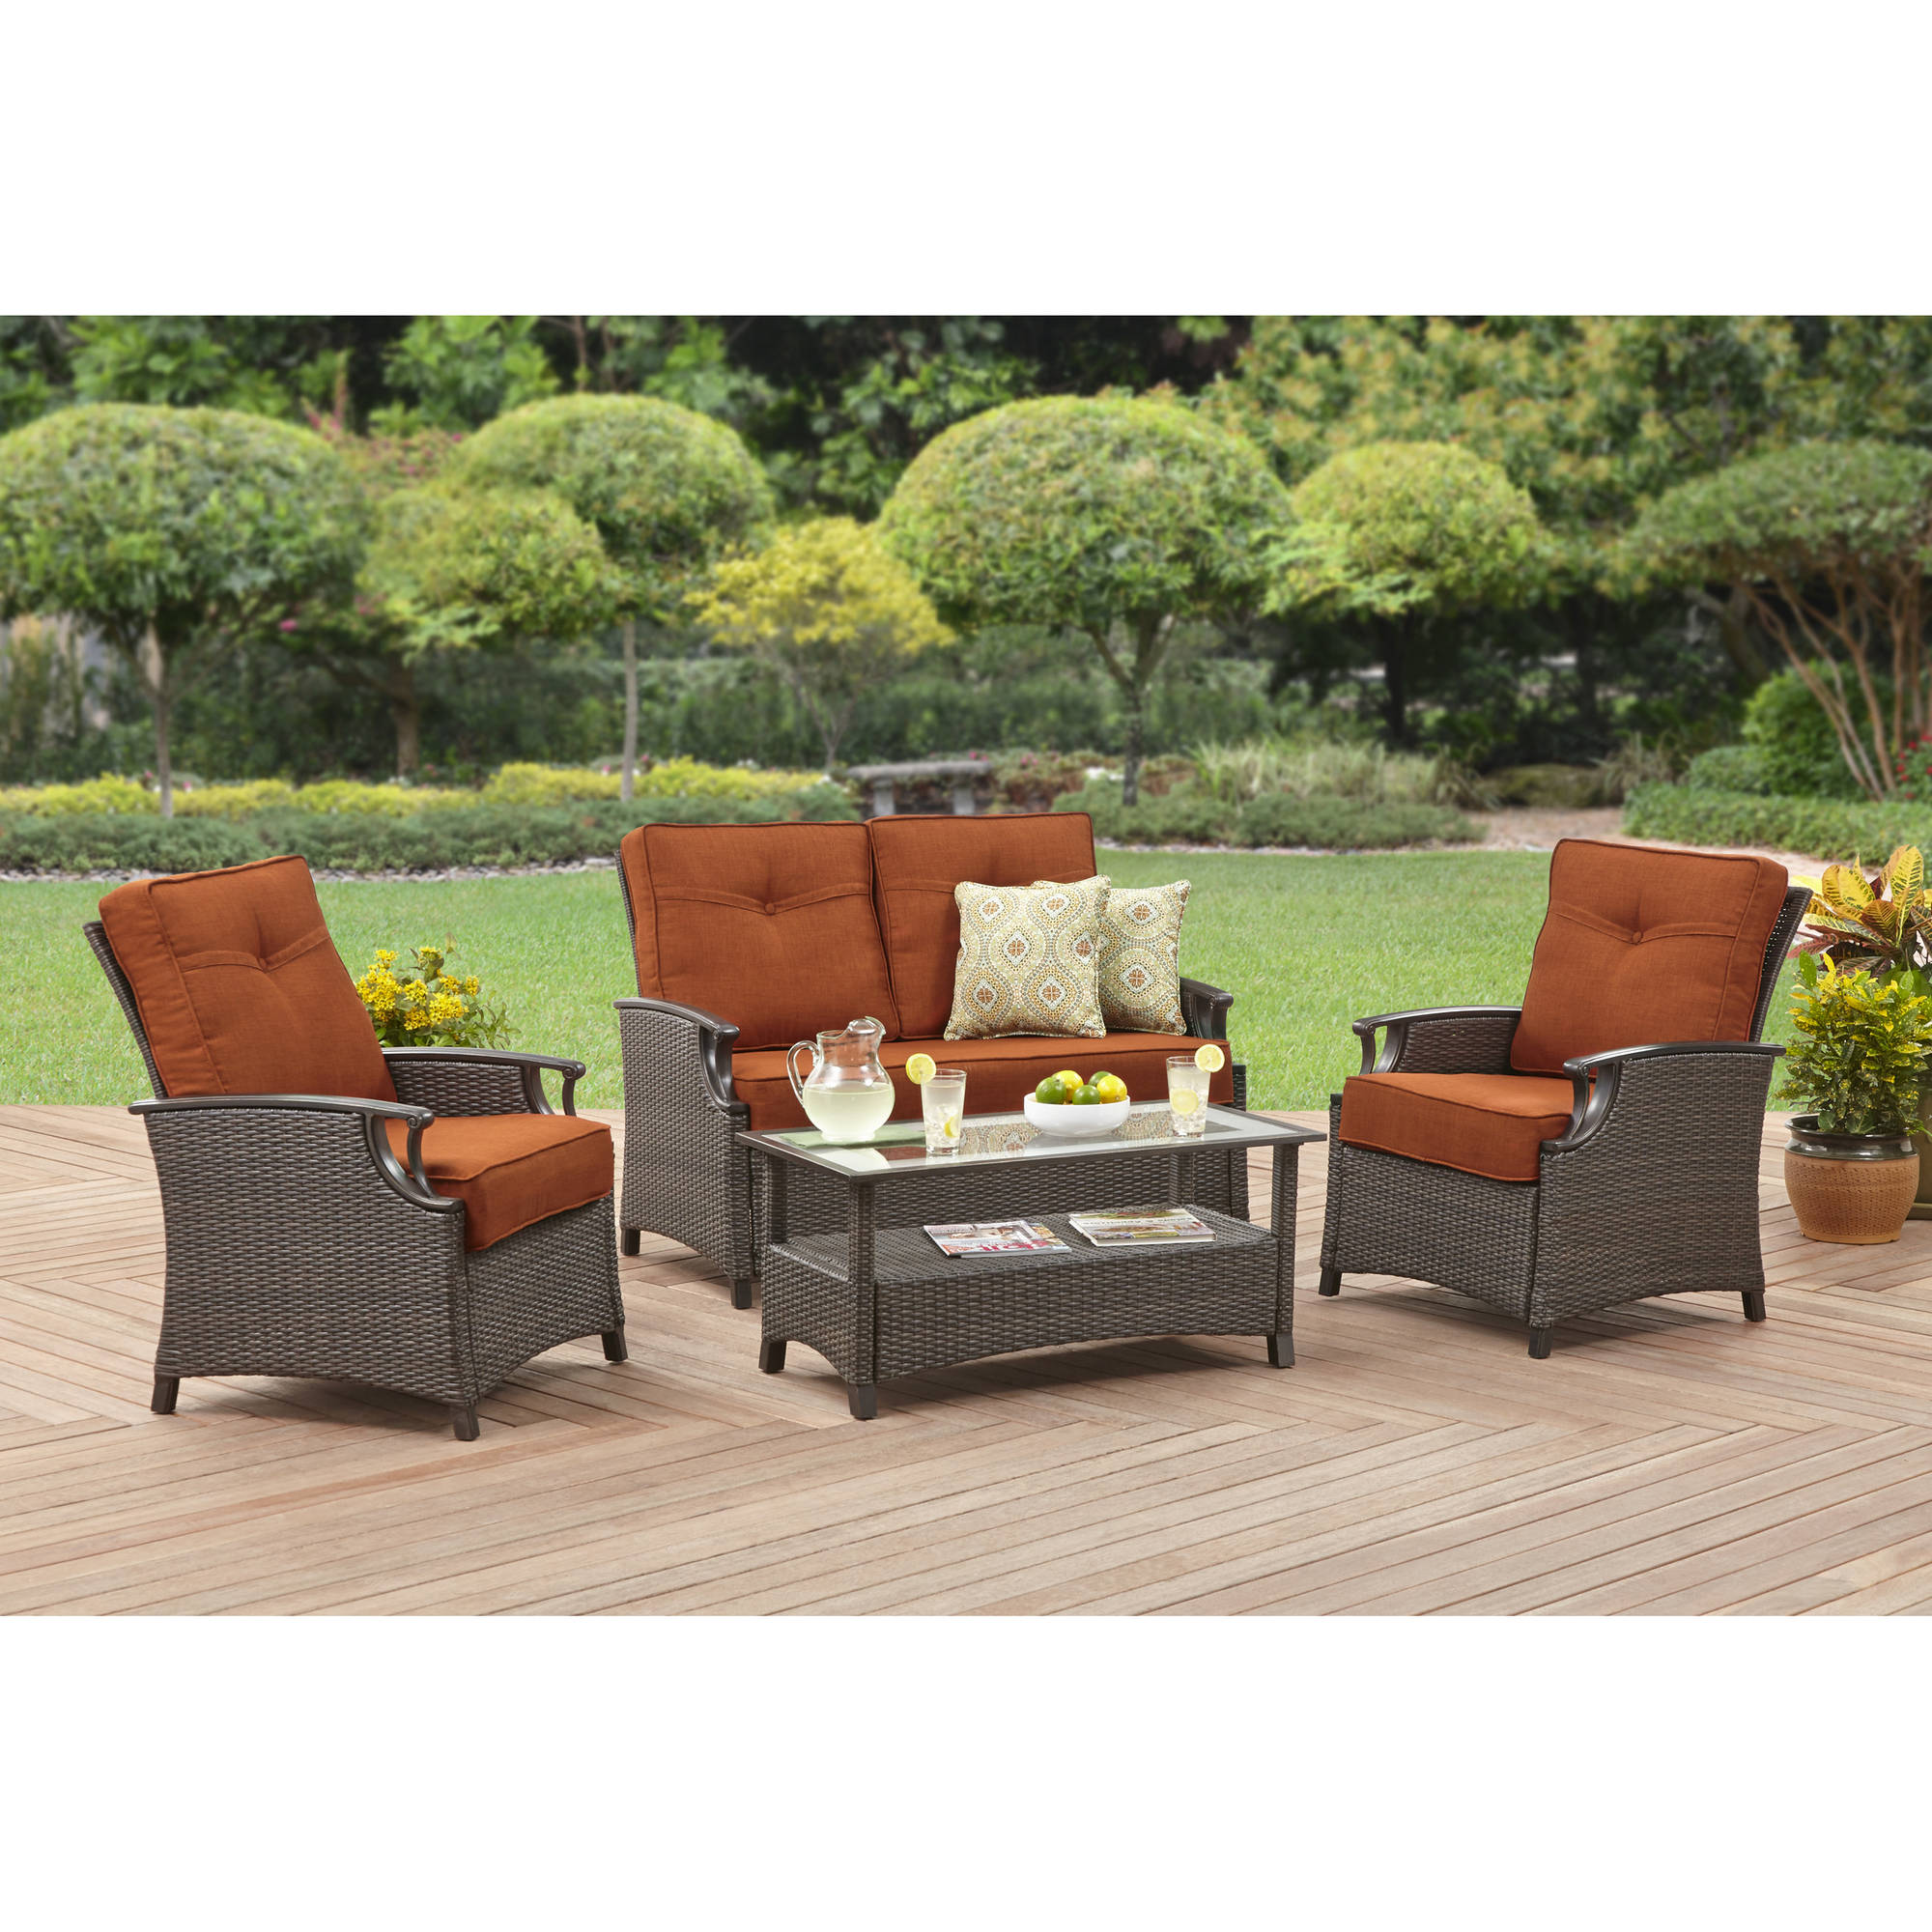 Better homes and gardens oak terrace 4 piece outdoor furniture set tradepongo